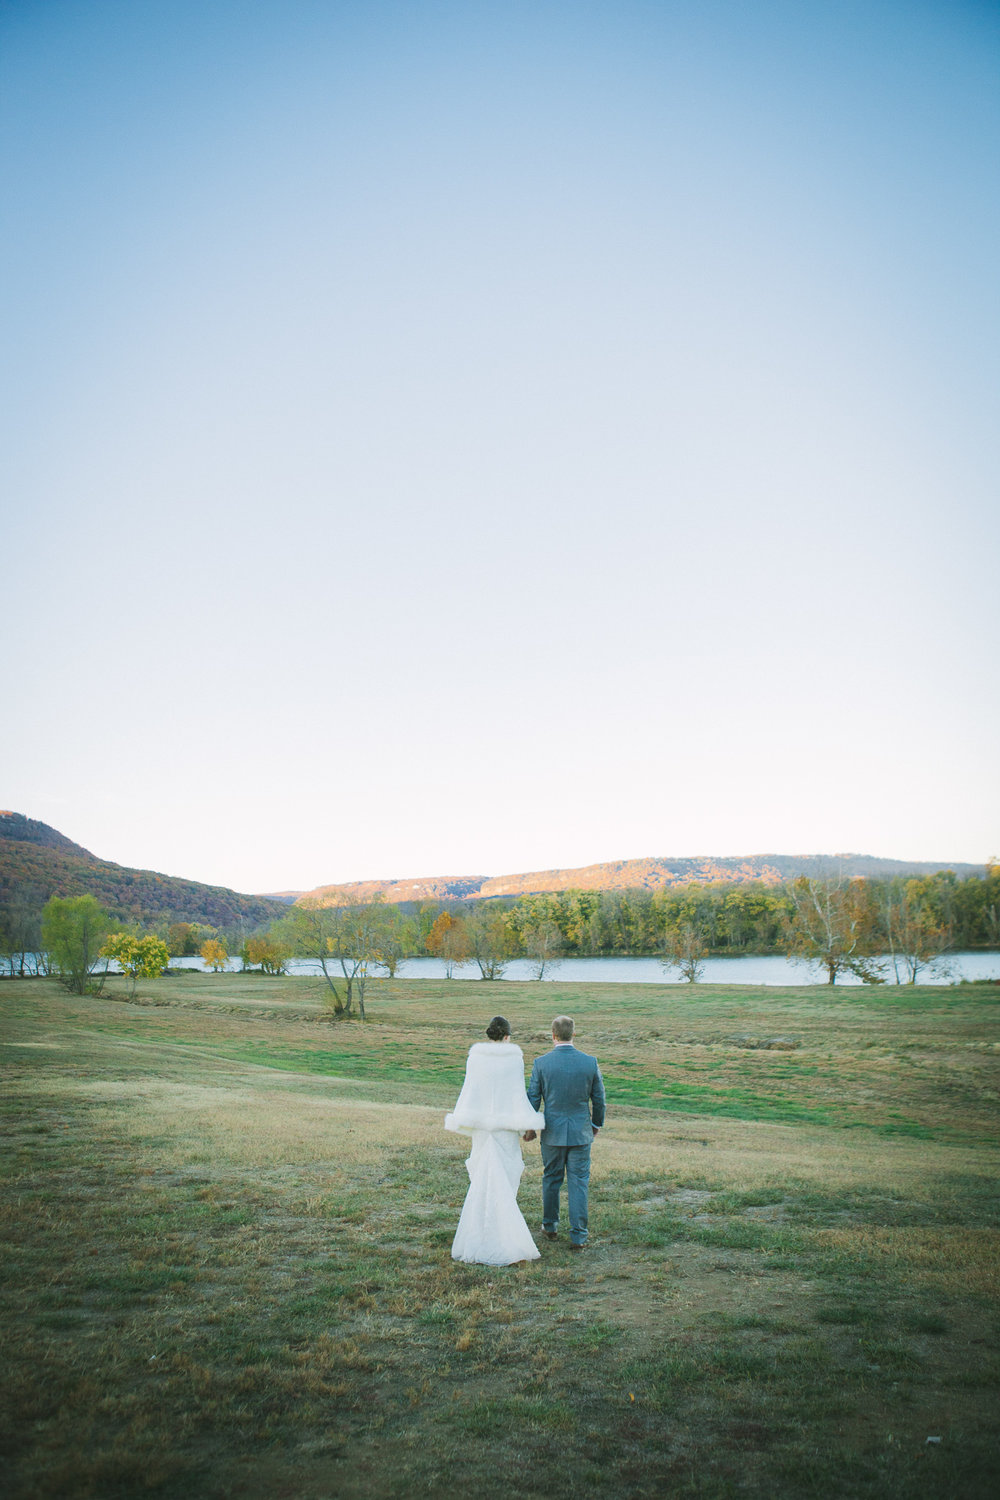 chattanooga-wedding-photographer-inimate-beautiful-tennessee-31.jpg